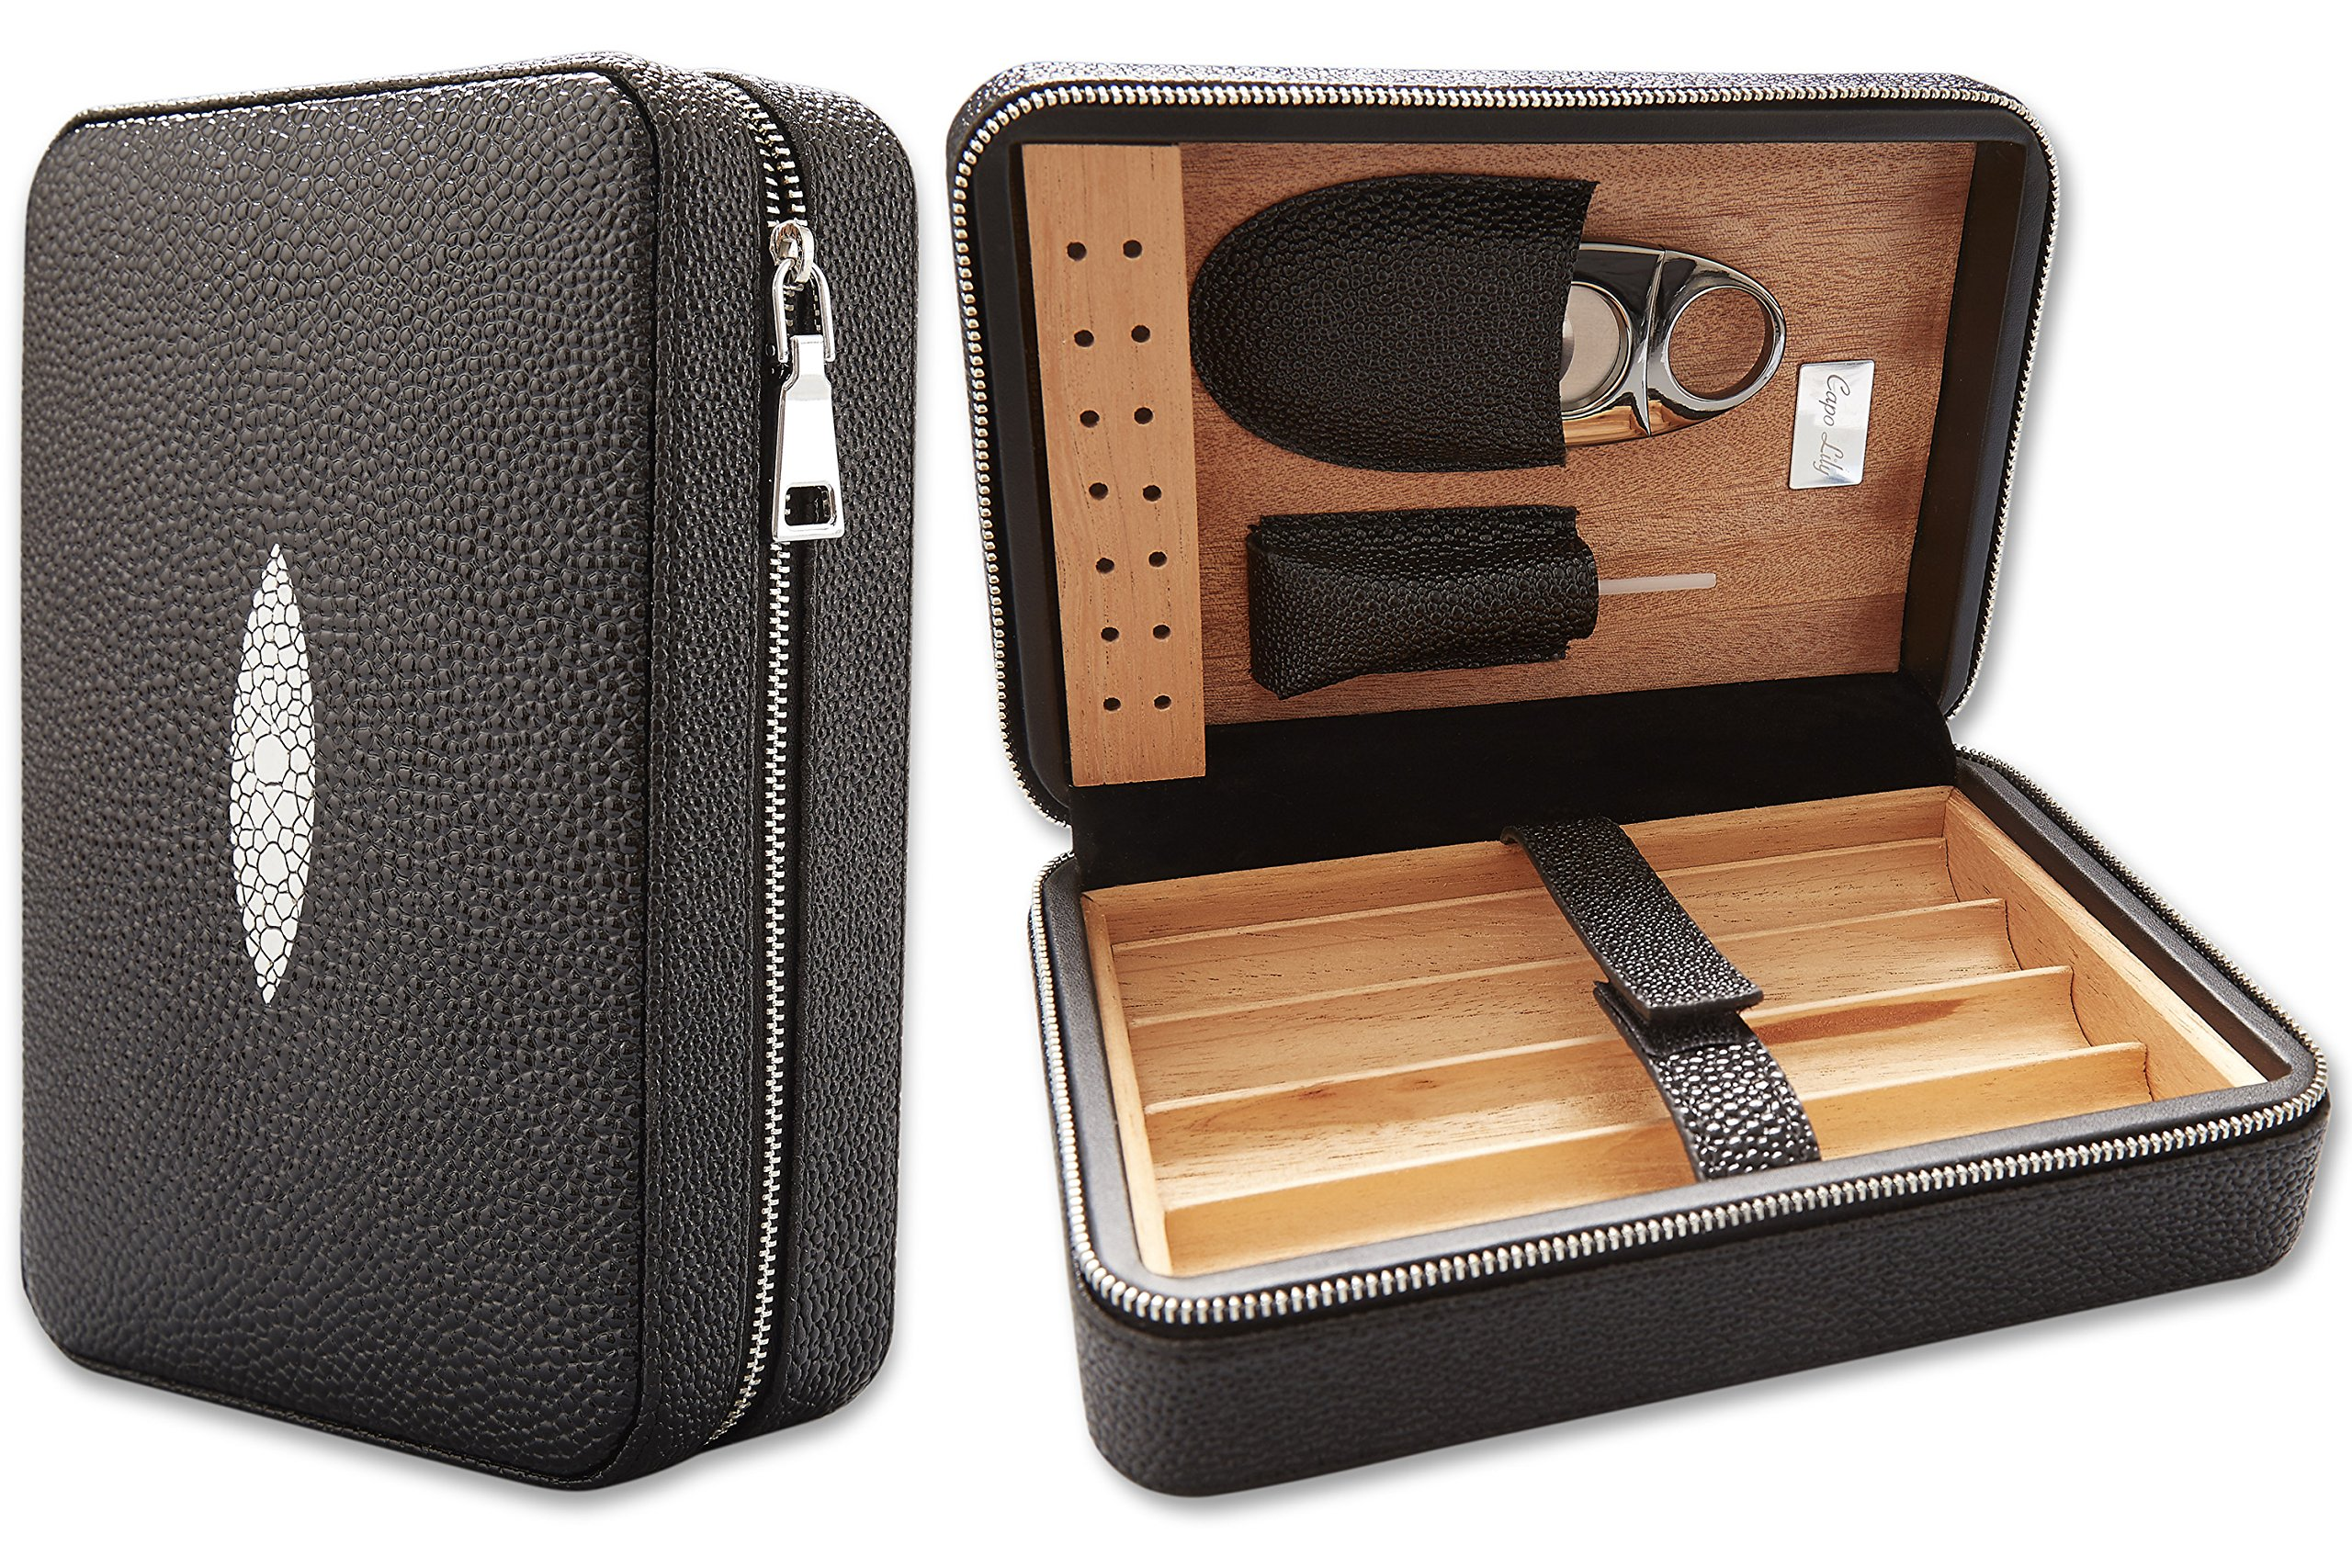 Capo Lily Cigar Humidor, Travel Portable Case with Cutter, PU Leather Wooden Box for 4 Cigars by Capo Lily (Image #4)